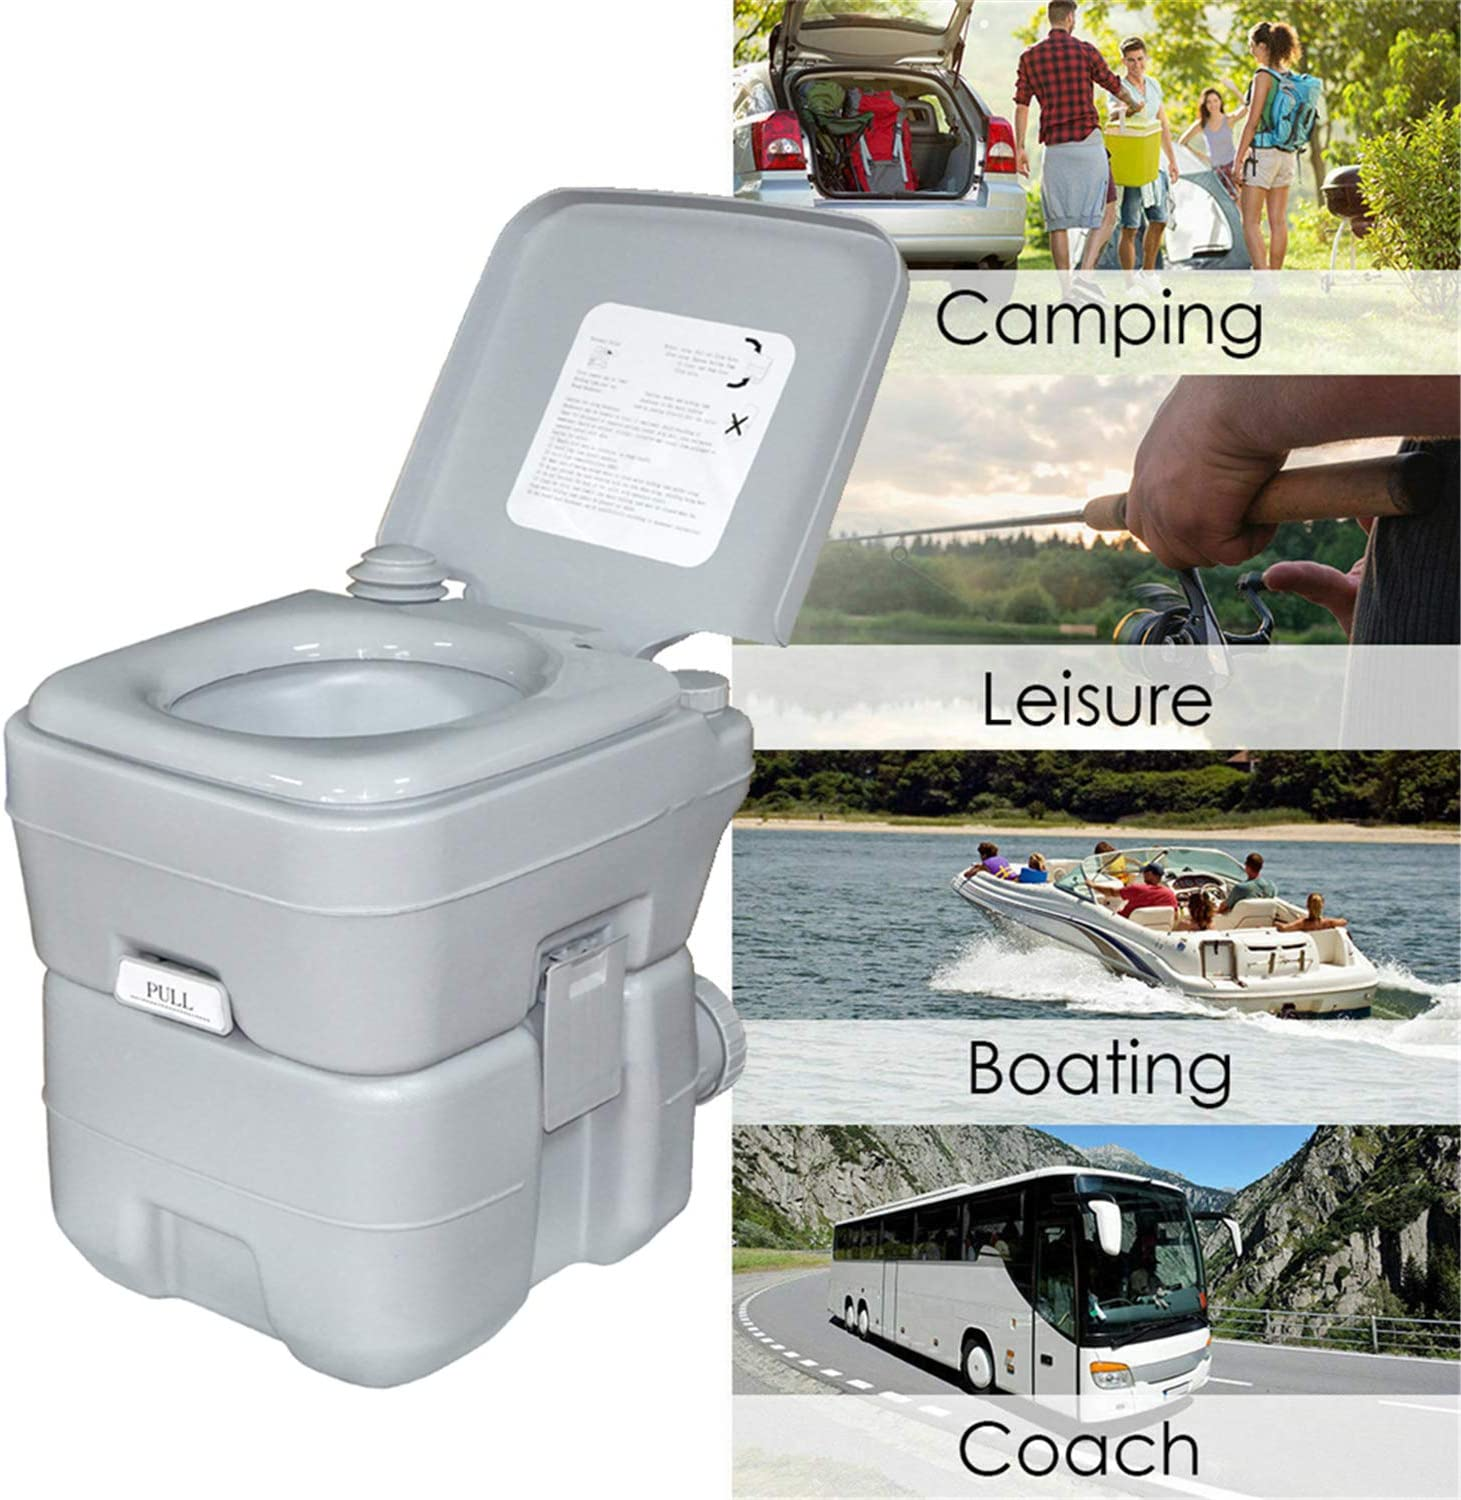 HTTMT - Portable Flush Toilet Commode Potty for Travel Camping Boating Hiking Roadtripping Use On RV Boat Coach Outdoor Indoor & More | 5 Gallon 20L Easy Clean [P/N: ET-Toilet001]